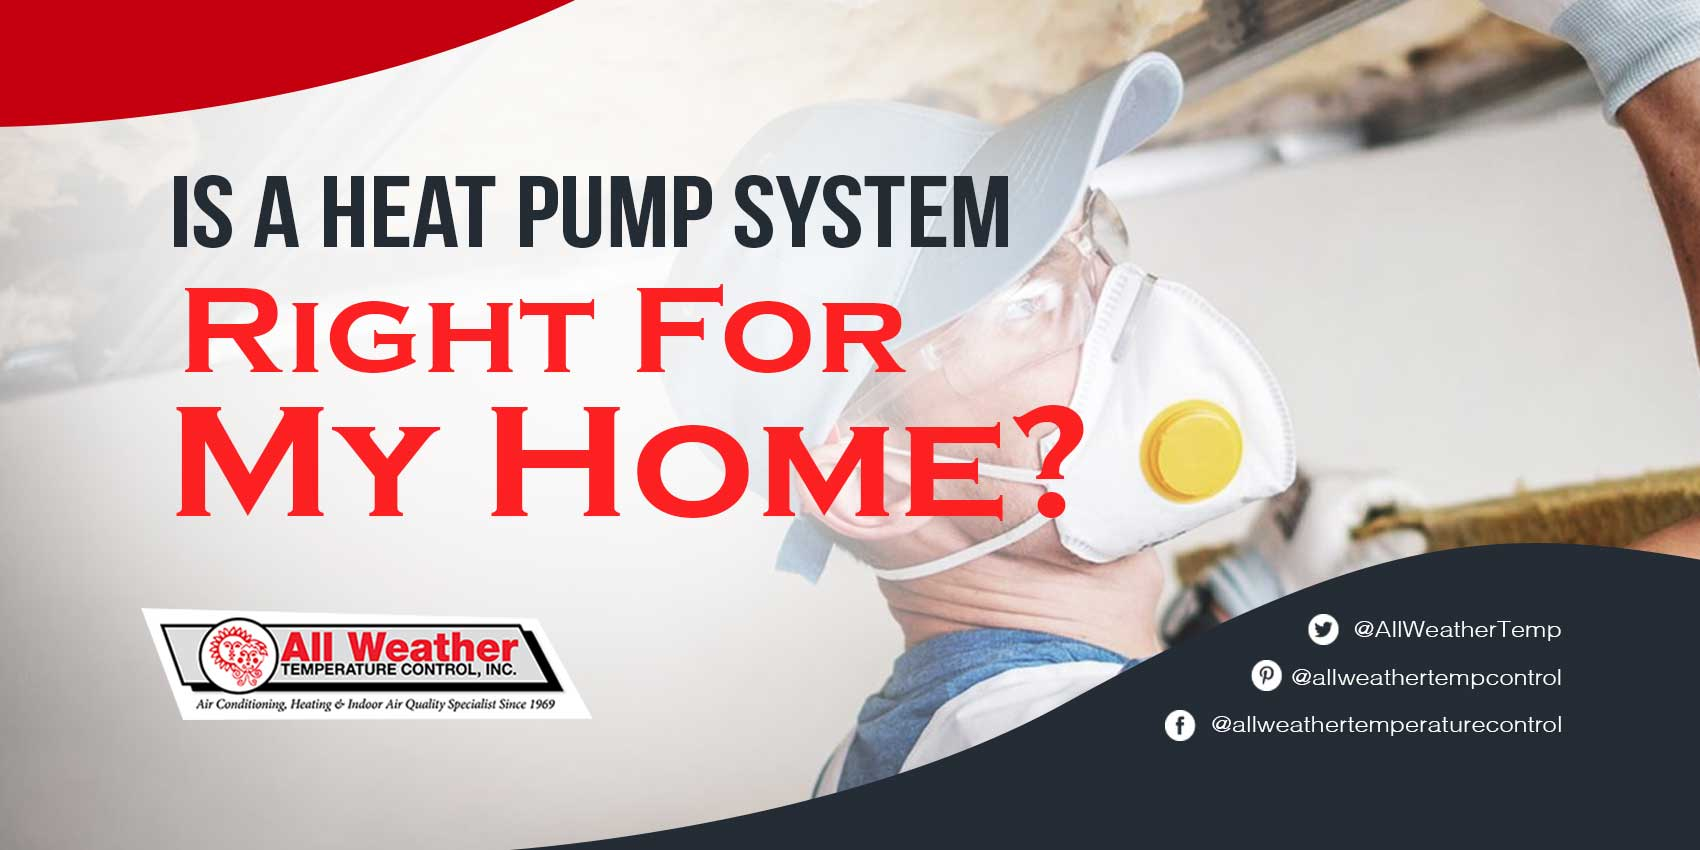 Is A Heat Pump System Right For My Home?